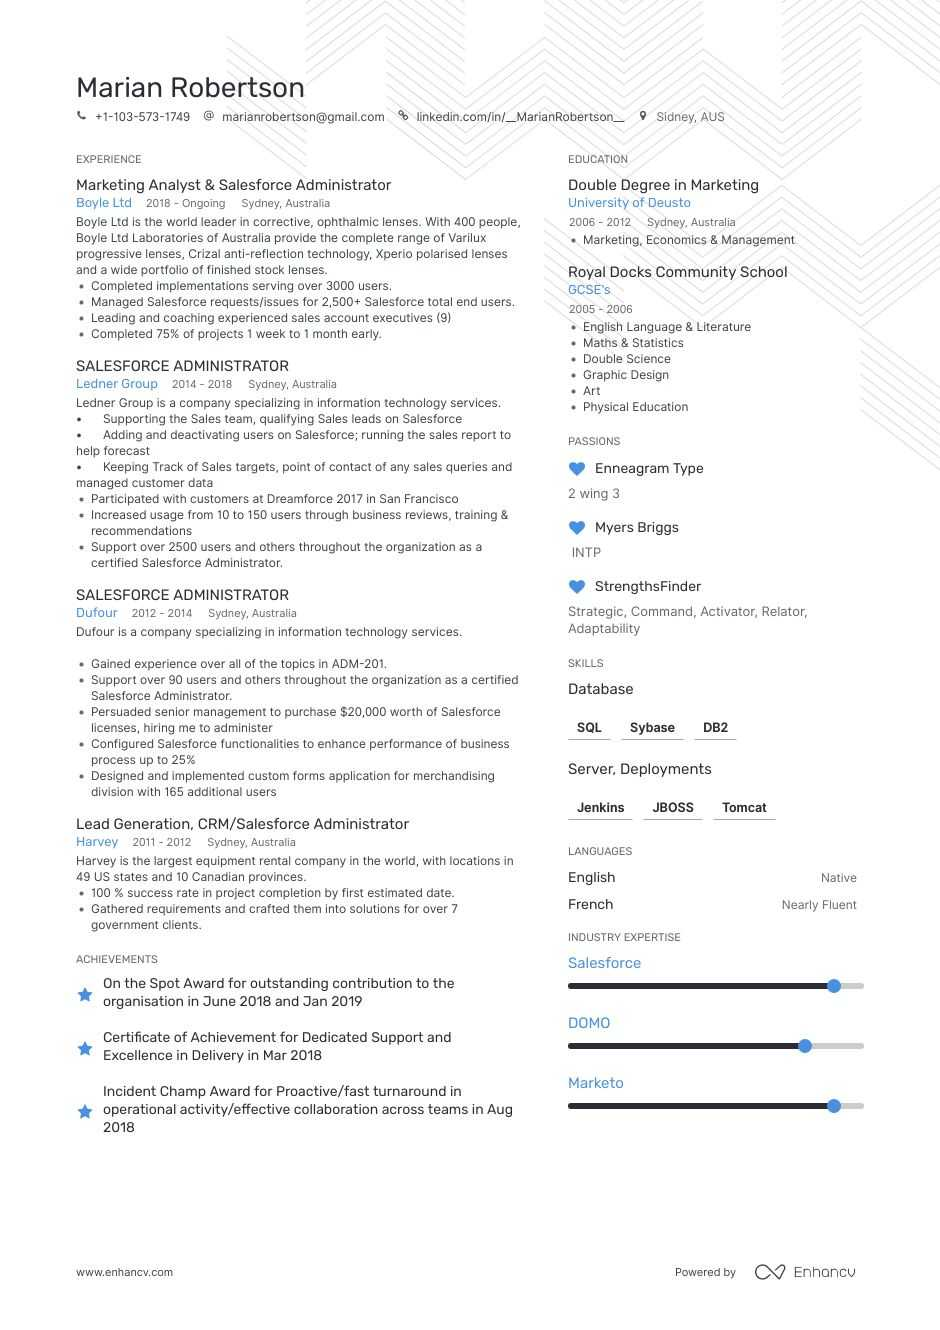 salesforce resume examples expert advice enhancv admin for years experience insurance Resume Salesforce Admin Resume For 3 Years Experience